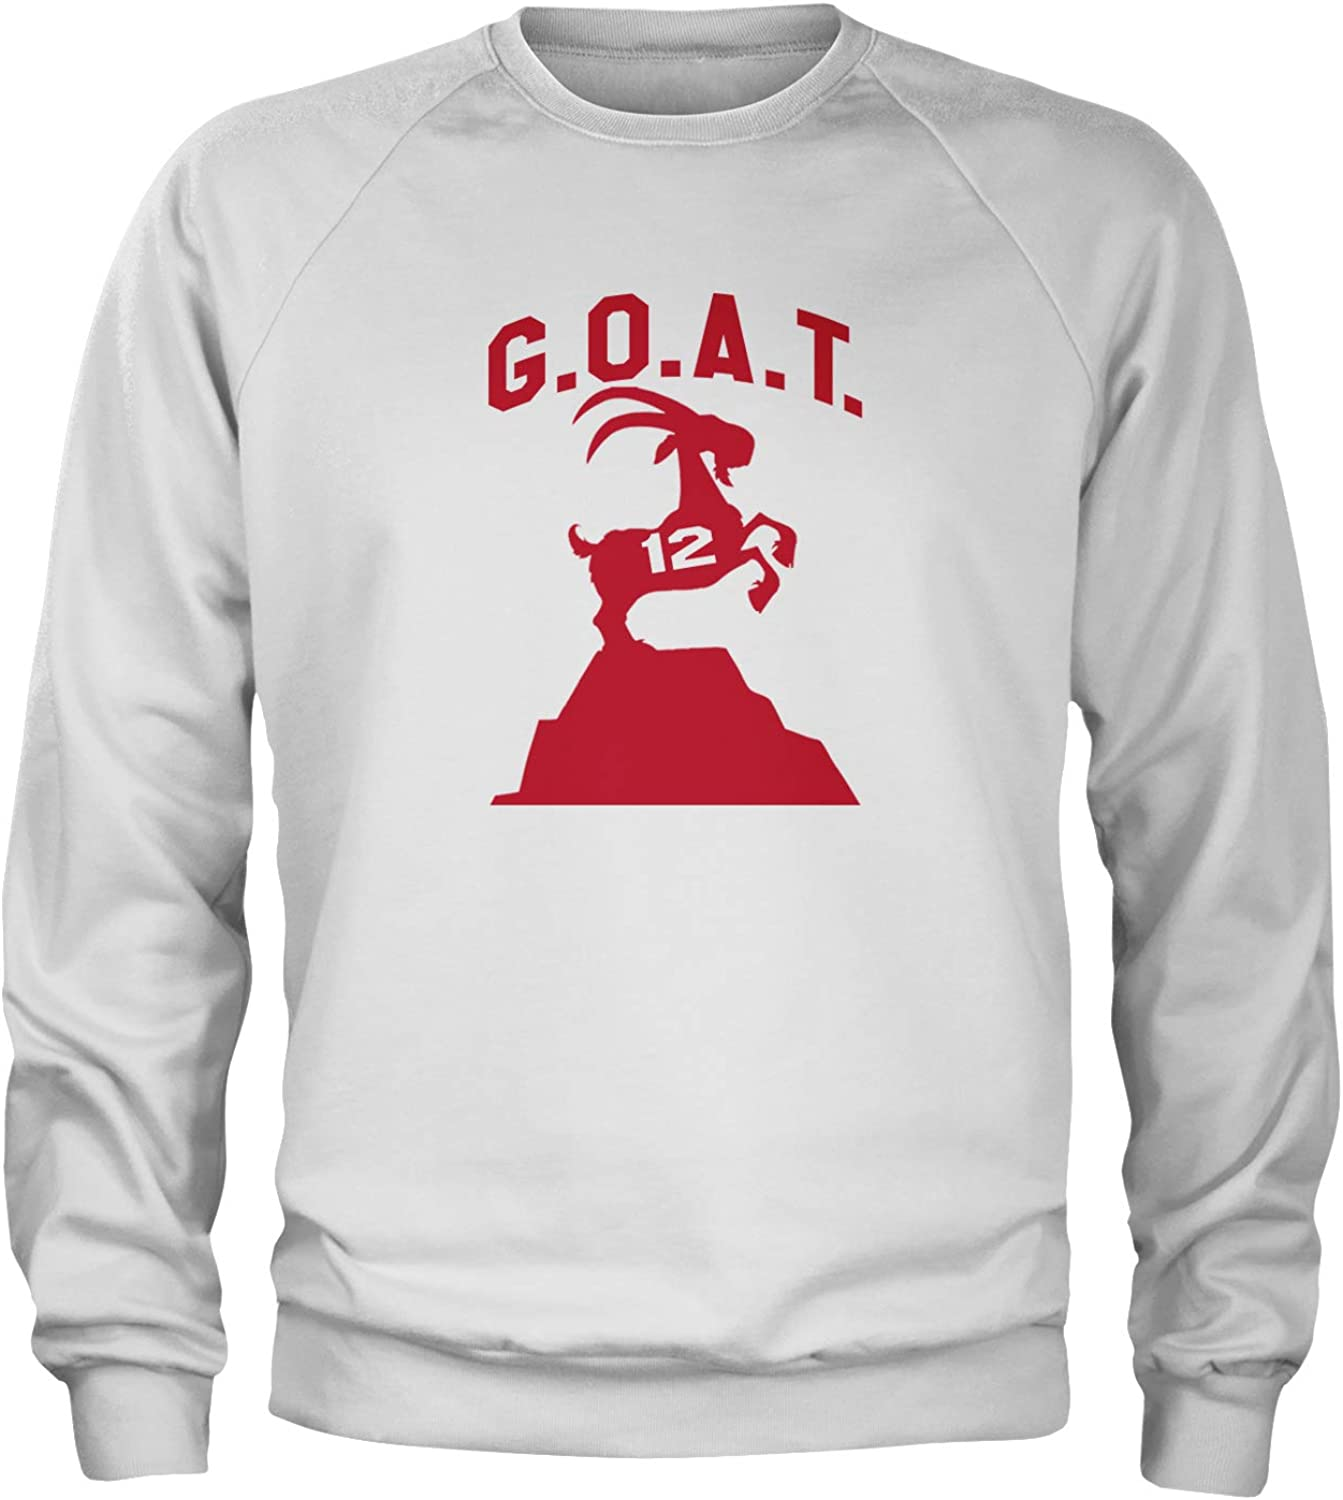 Expression Tees G.O.A.T Greatest of All Time New England Football Crewneck Sweatshirt